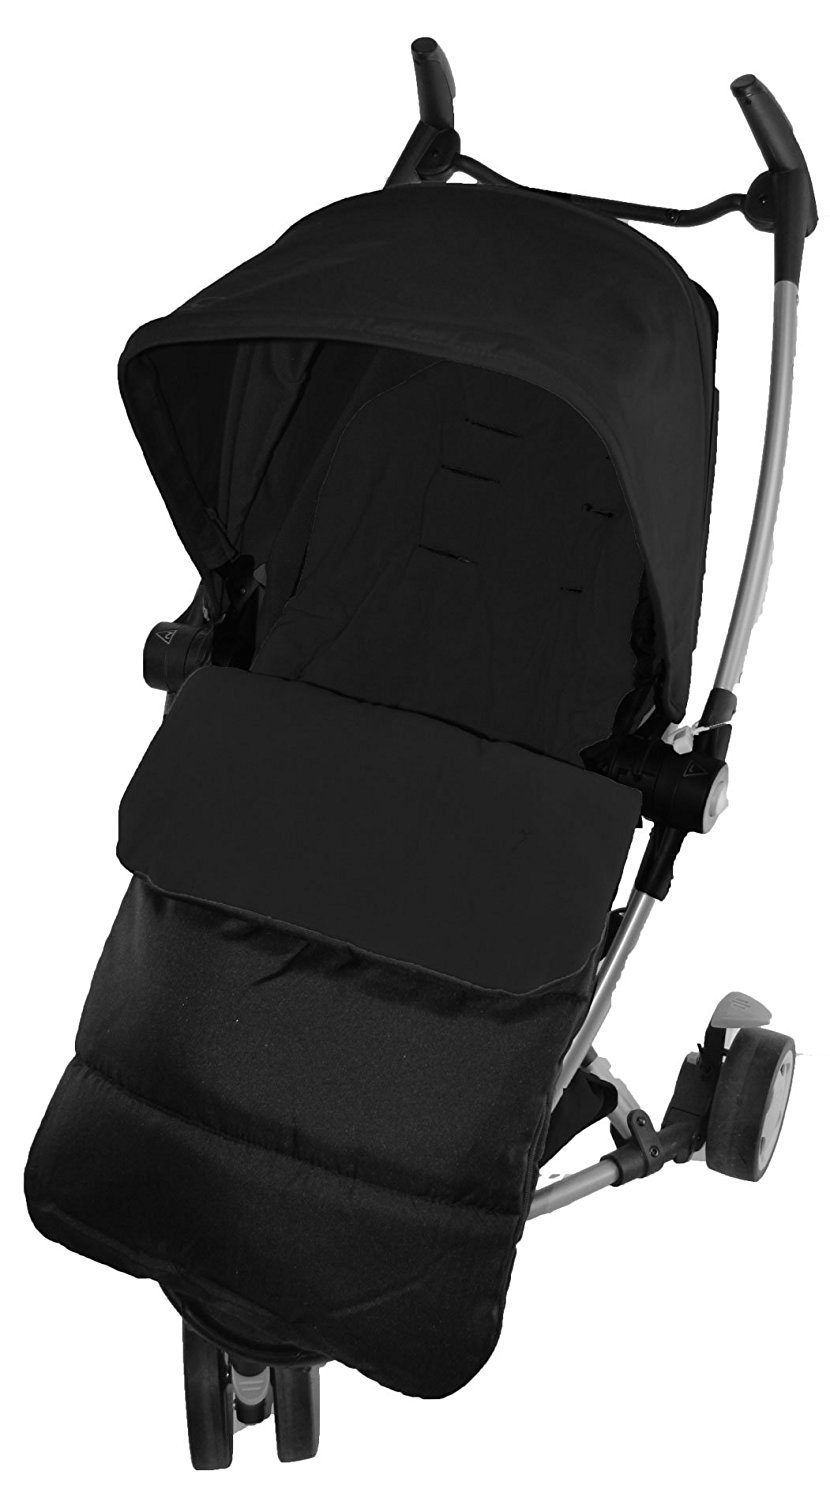 Chancelière/Cosy orteils Compatible avec Quinny Yezz Poussette Black Jack For-Your-Little-One